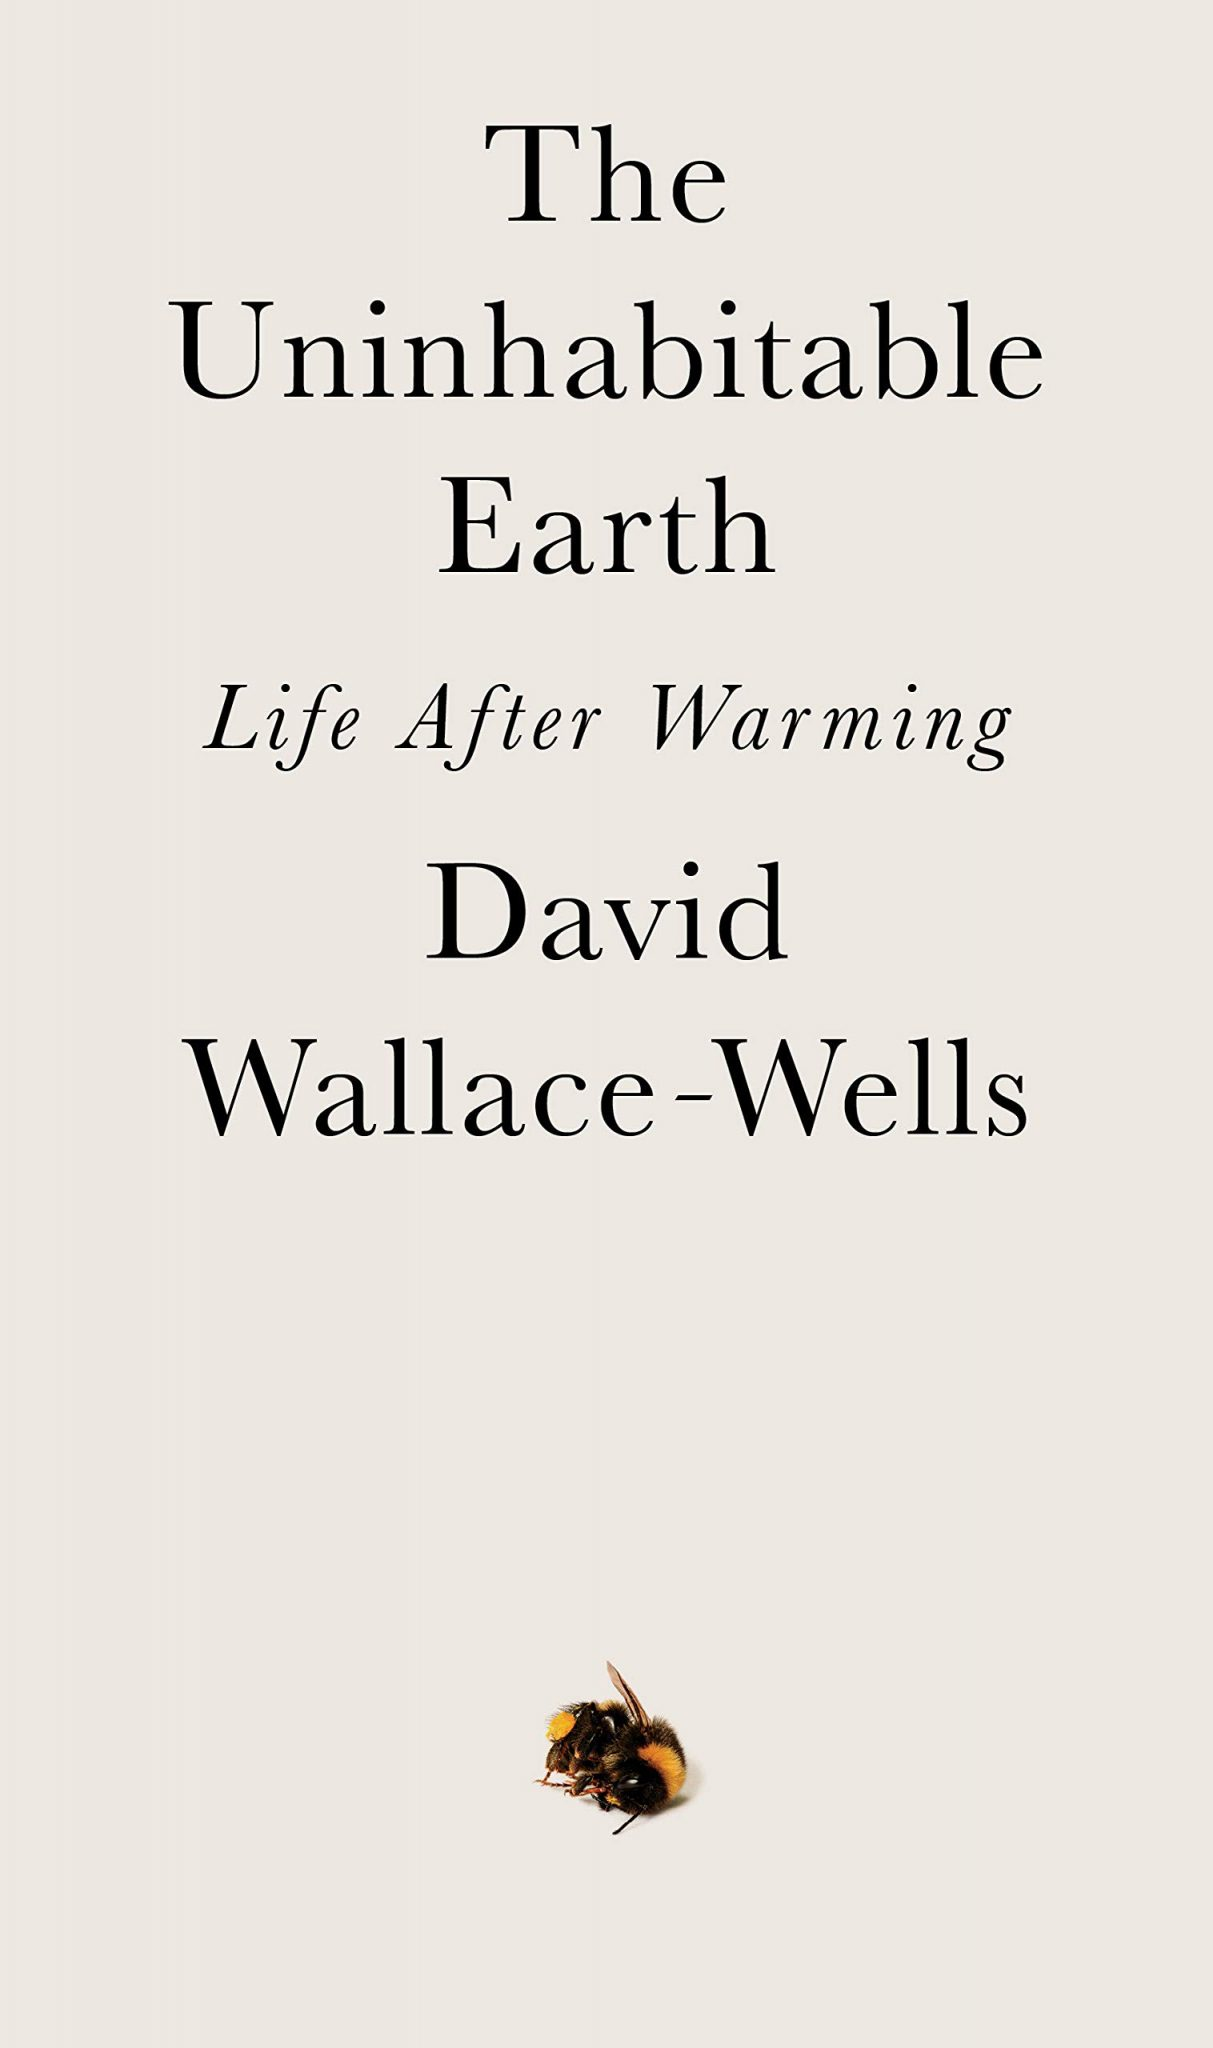 This new book covers a problem that humanity is facing and will face in a worryingly growing degree in the years to come: climate change